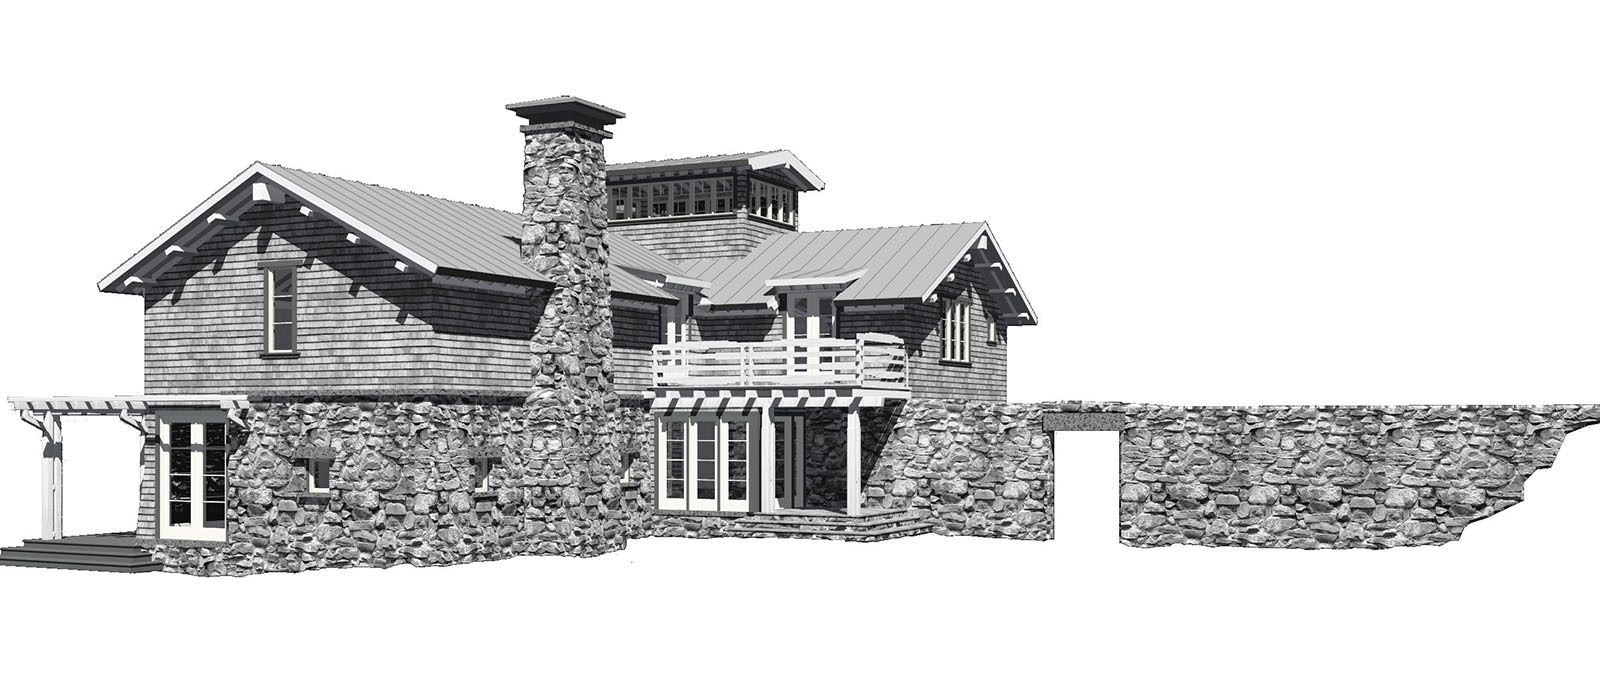 Knecht Model Entry Elevation Eroded Stone Wall